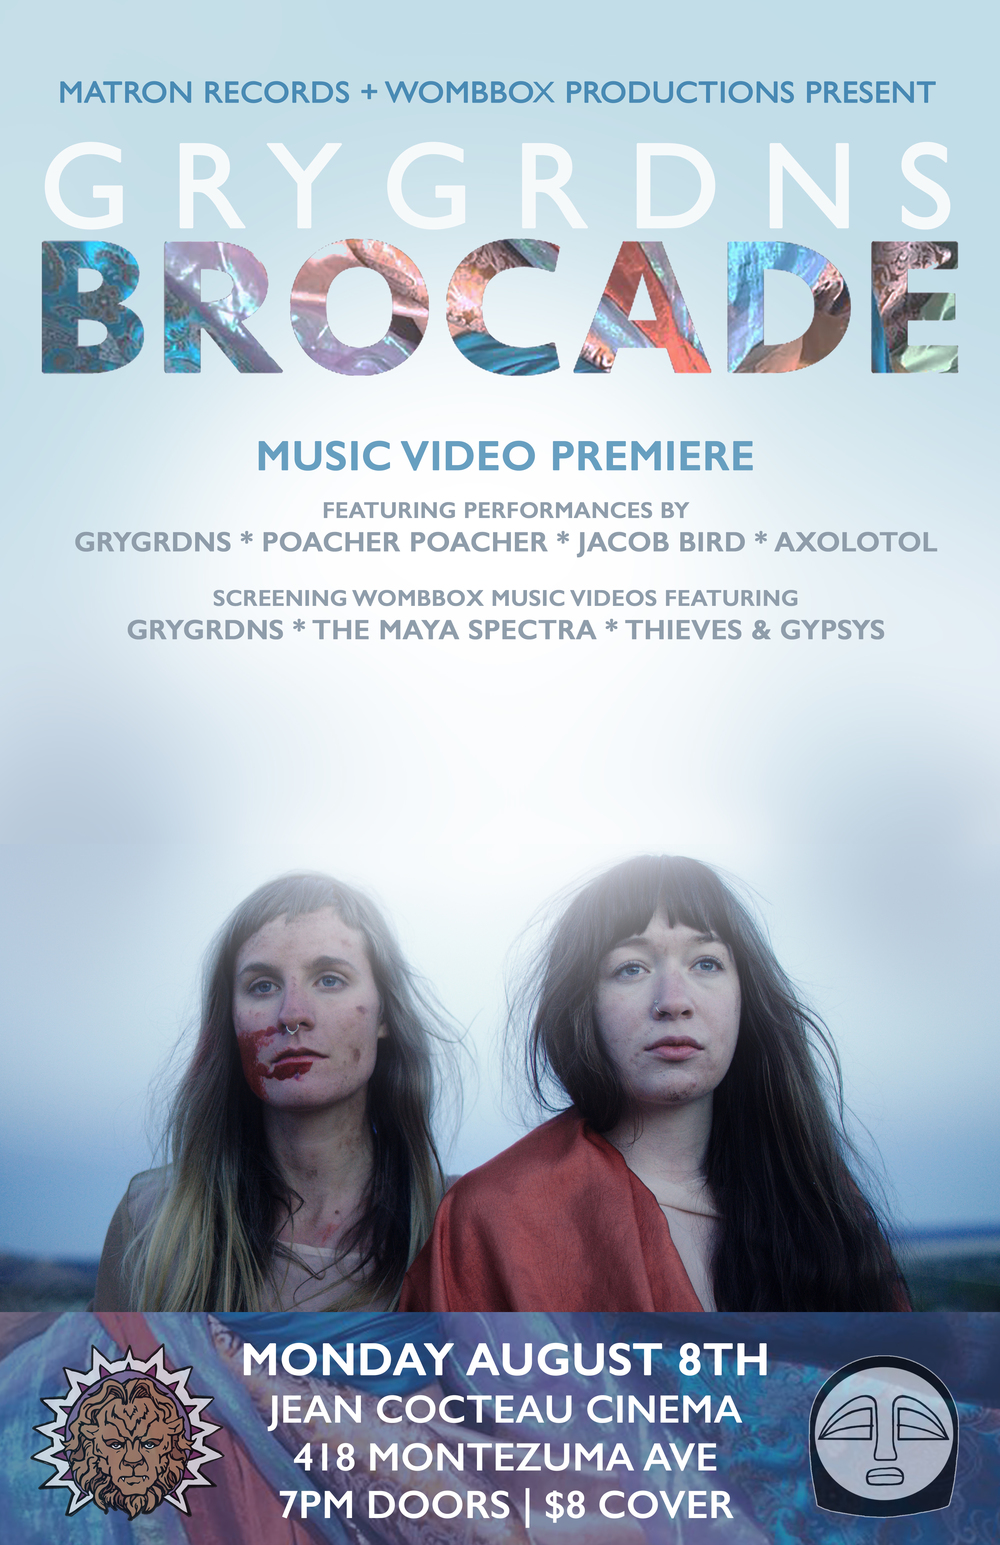 "After spending a long and thrilling weekend filming in Galisteo Basin this April, Matron Records is pleased to announce the release of   GRYGRDNS  ' new music video ""Brocade"" which will premiere Monday, August 8th at the Jean Cocteau Cinema in Santa Fe. Produced by Wombox and featuring the third single from   Interwoven  , ""Brocade"" is a heavy-hitting emotional rollercoaster of a song that is beautifully matched by the raw and powerful visual palate of director Amy West. Playing on themes of trust and betrayal the video is a potently visceral exploration of love, loss and rebirth.    Forming early 2015 as a collaboration between director Amy West and cinematographer Jakob Anderson, Wombbox is a growing collaboration of film students from Santa Fe University of Art and Design. They produced their first video,   ""Music Box""  , for local electronic pop ensemble   The Maya Spectra   which won Best Music Video at AMFM in Flagstaff and the National Film Festival for Talented Youth in addition to winning Best Student Film at the Santa Fe Independent Film Festival. Shortly after, the team created a video for Santa Fe's garage rock trio   Thieves & Gypsys   with sponsorship from Albuquerque's Marble Brewery.     All three Wombbox Production music videos will be screened at the ""Brocade"" premiere alongside acoustic performances by GRYGRDNS, Poacher Poacher (Caitlin Brothers of STBWLIH), Jacob Bird and Axolotol (Haven Willis of As In We and TOTI). Doors are at 7PM and admission is $8. For more information visit the   event webpage."